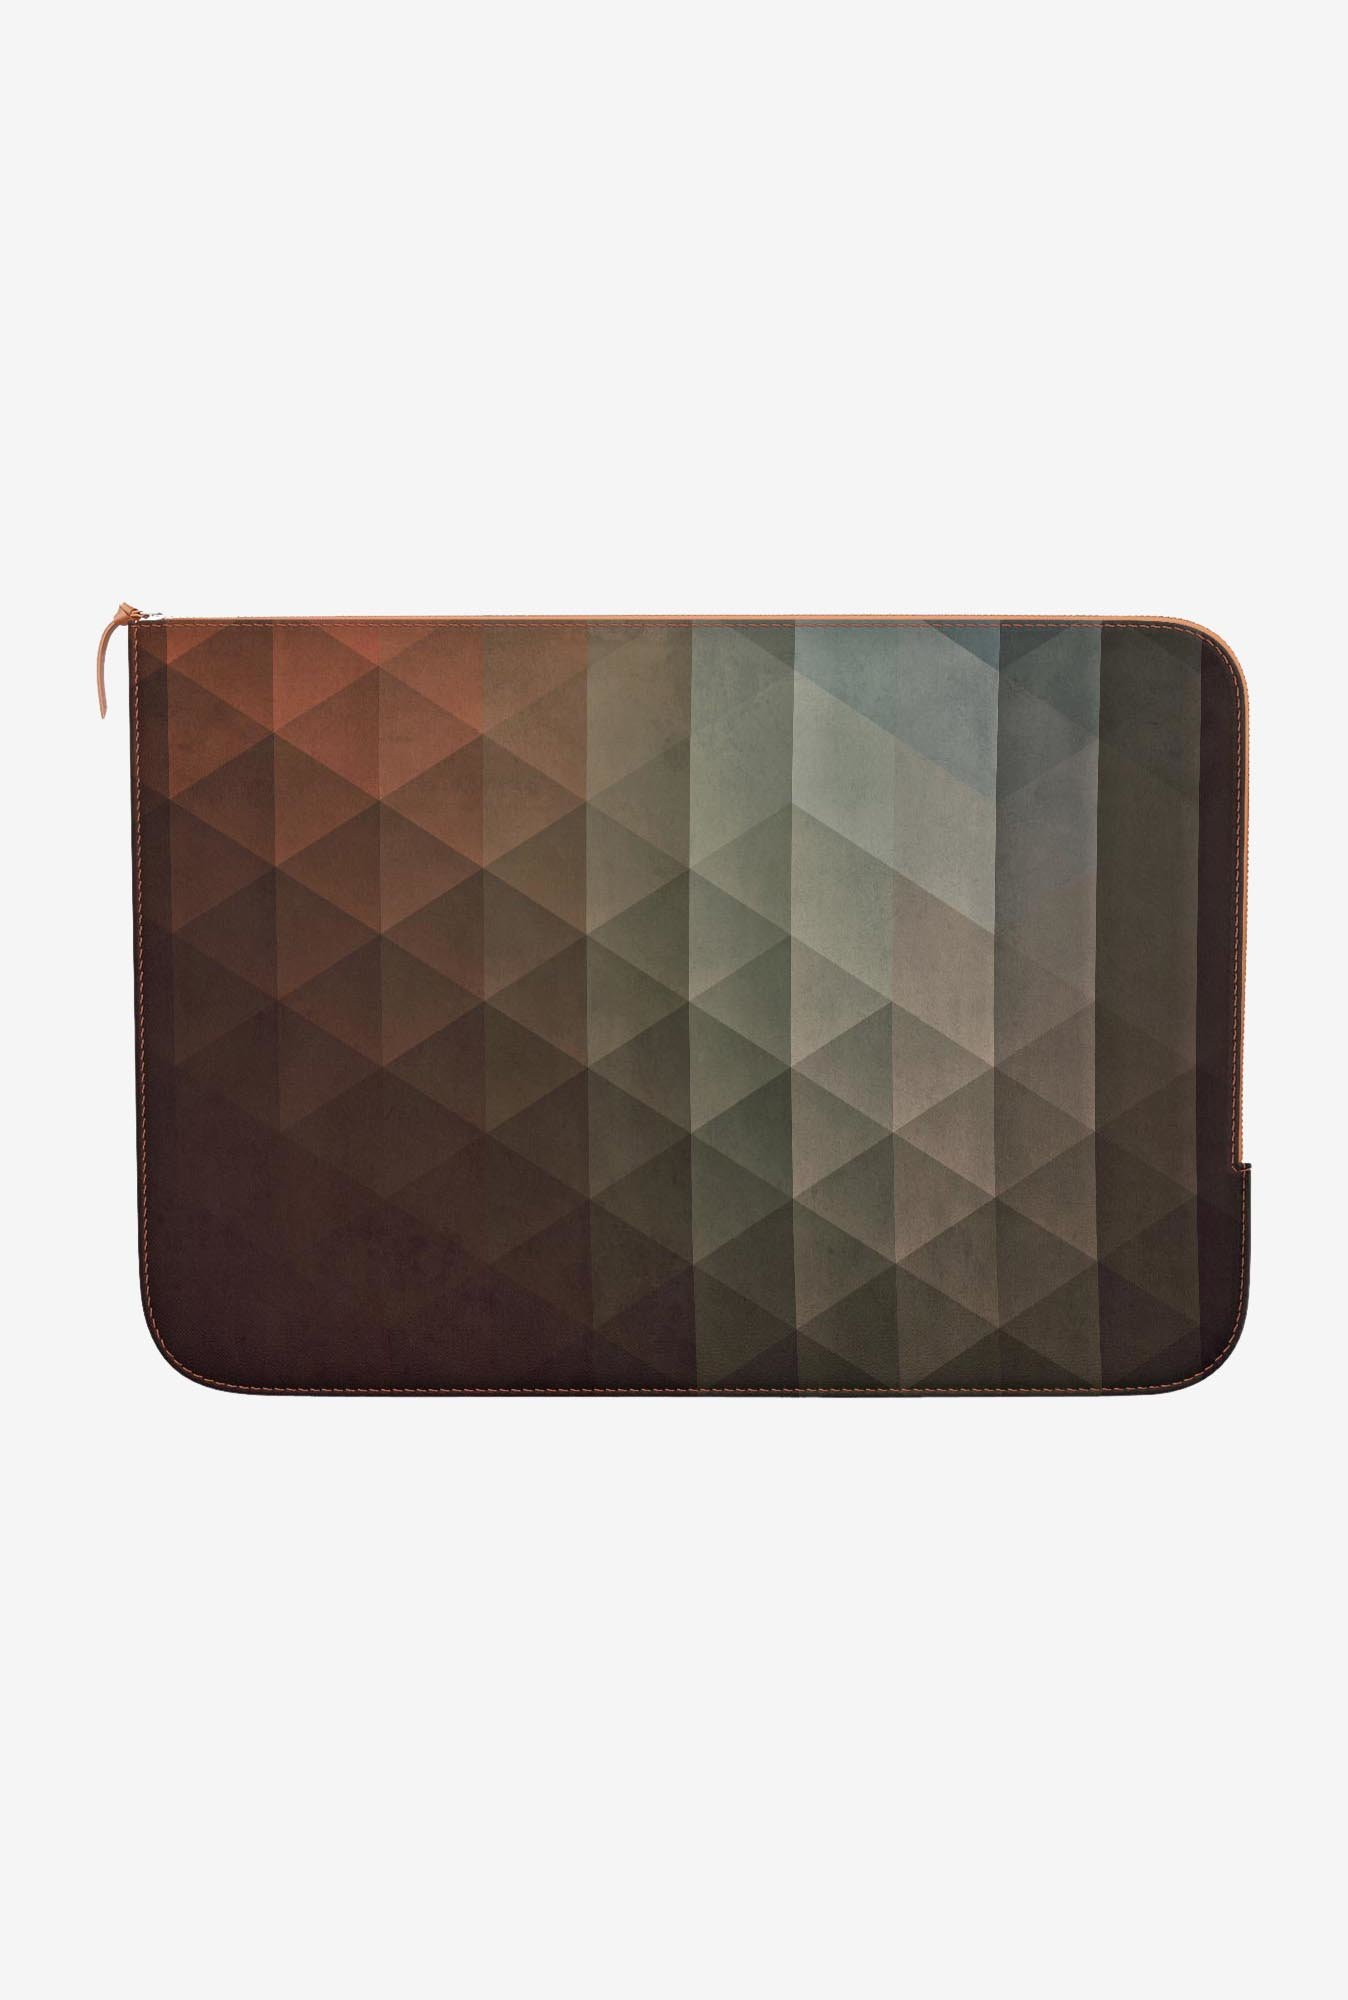 DailyObjects Tryst Lyss Hrxtl MacBook Air 11 Zippered Sleeve